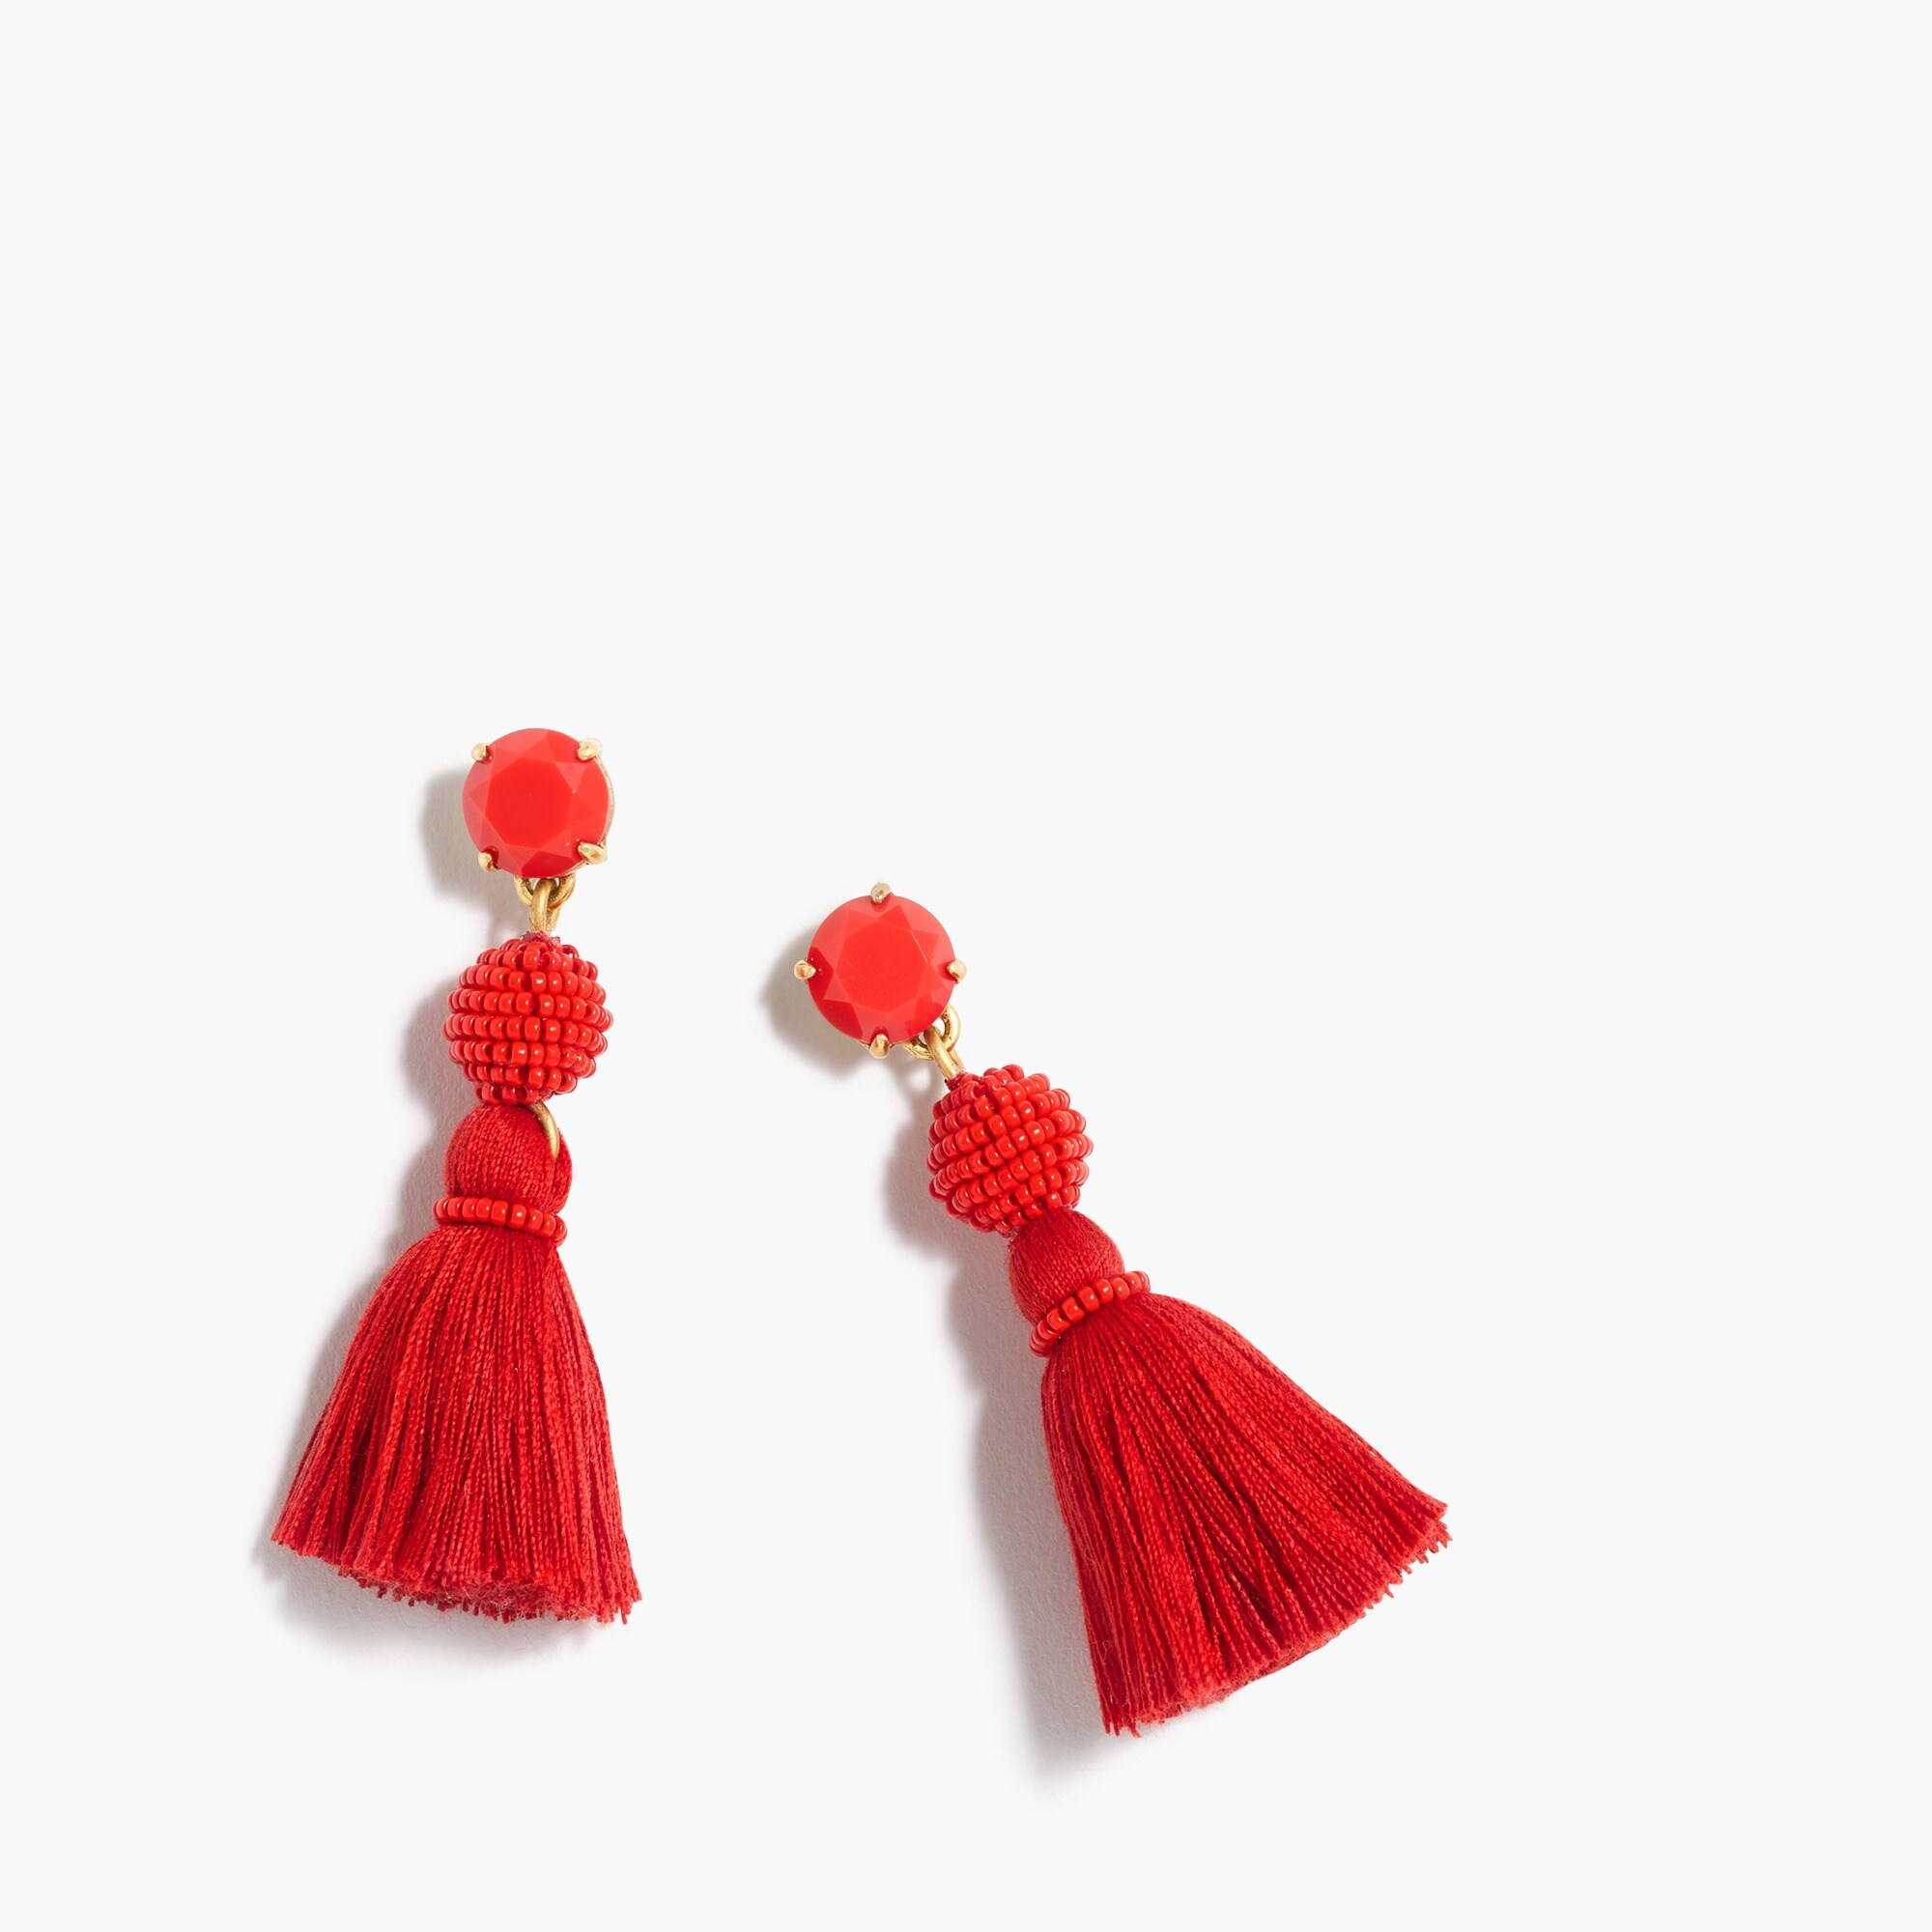 Tassel ball earrings